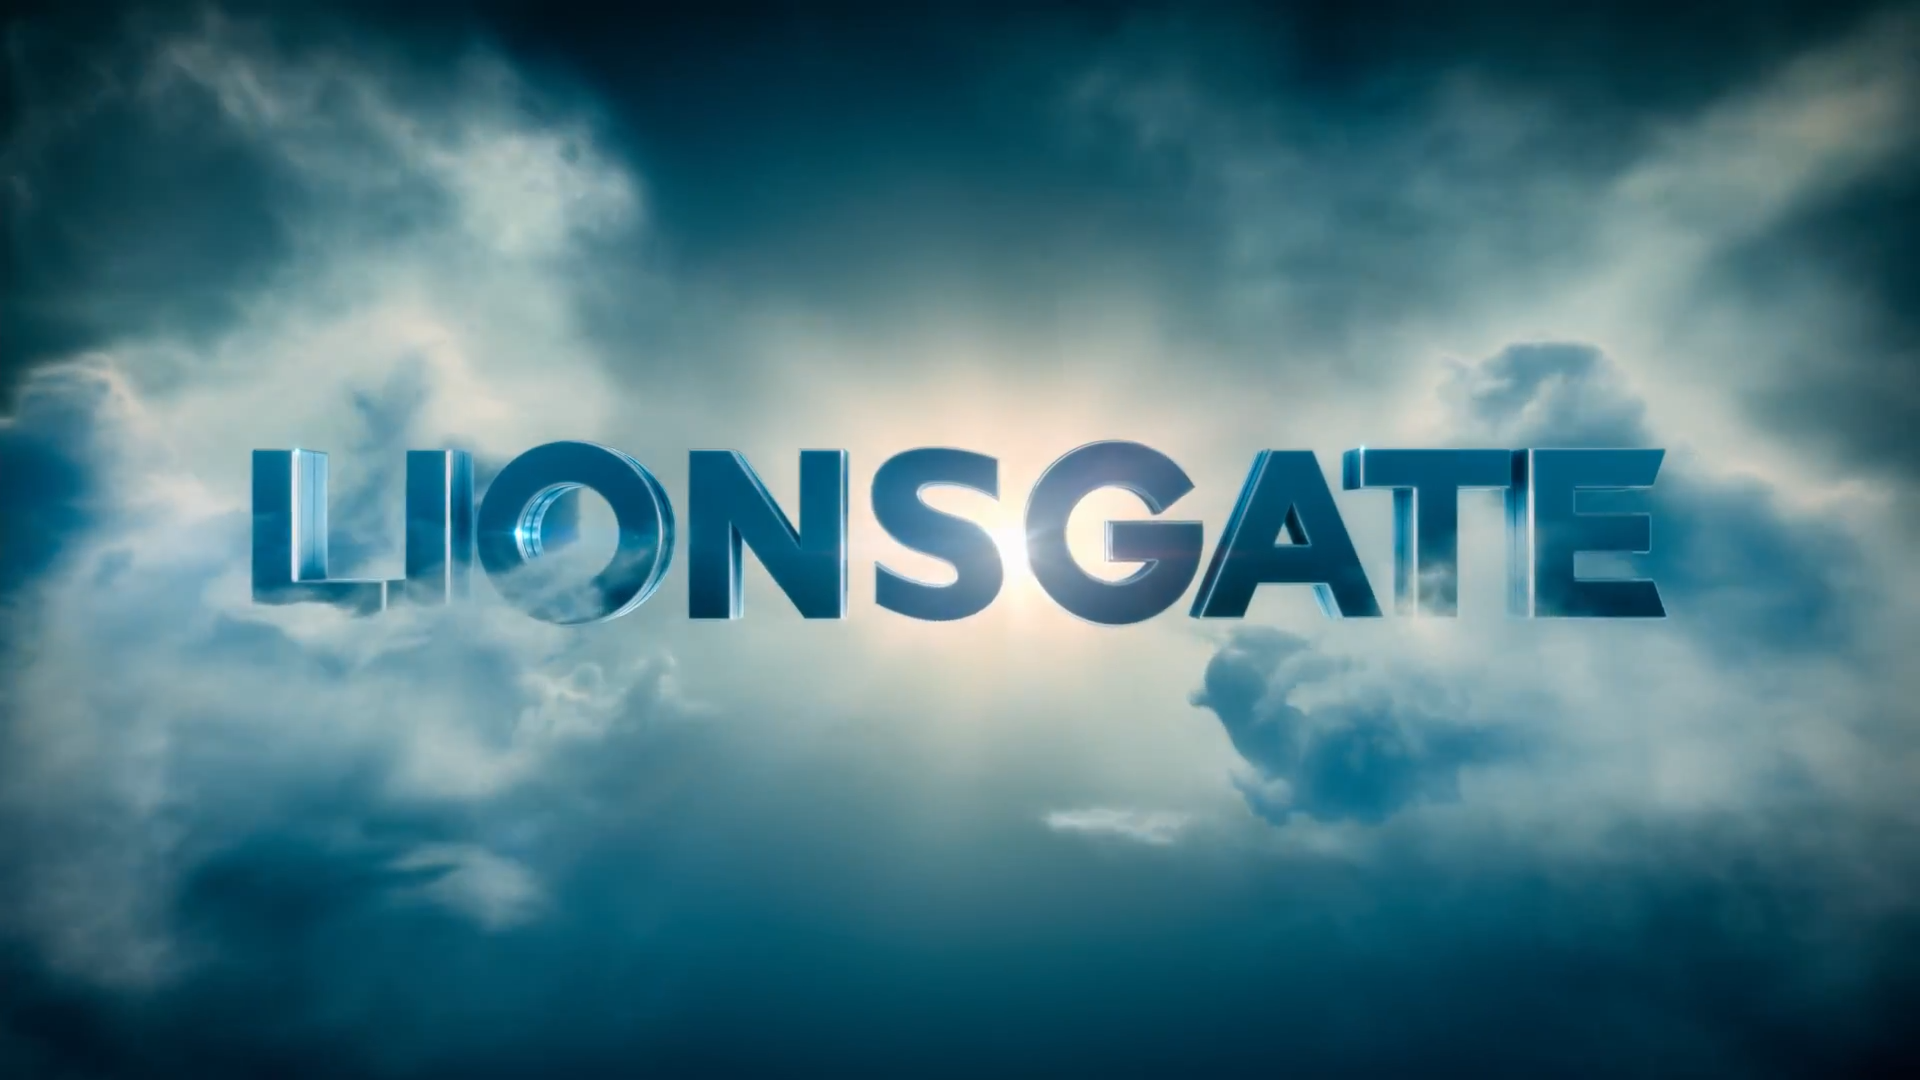 image lionsgate 2013png logopedia the logo and